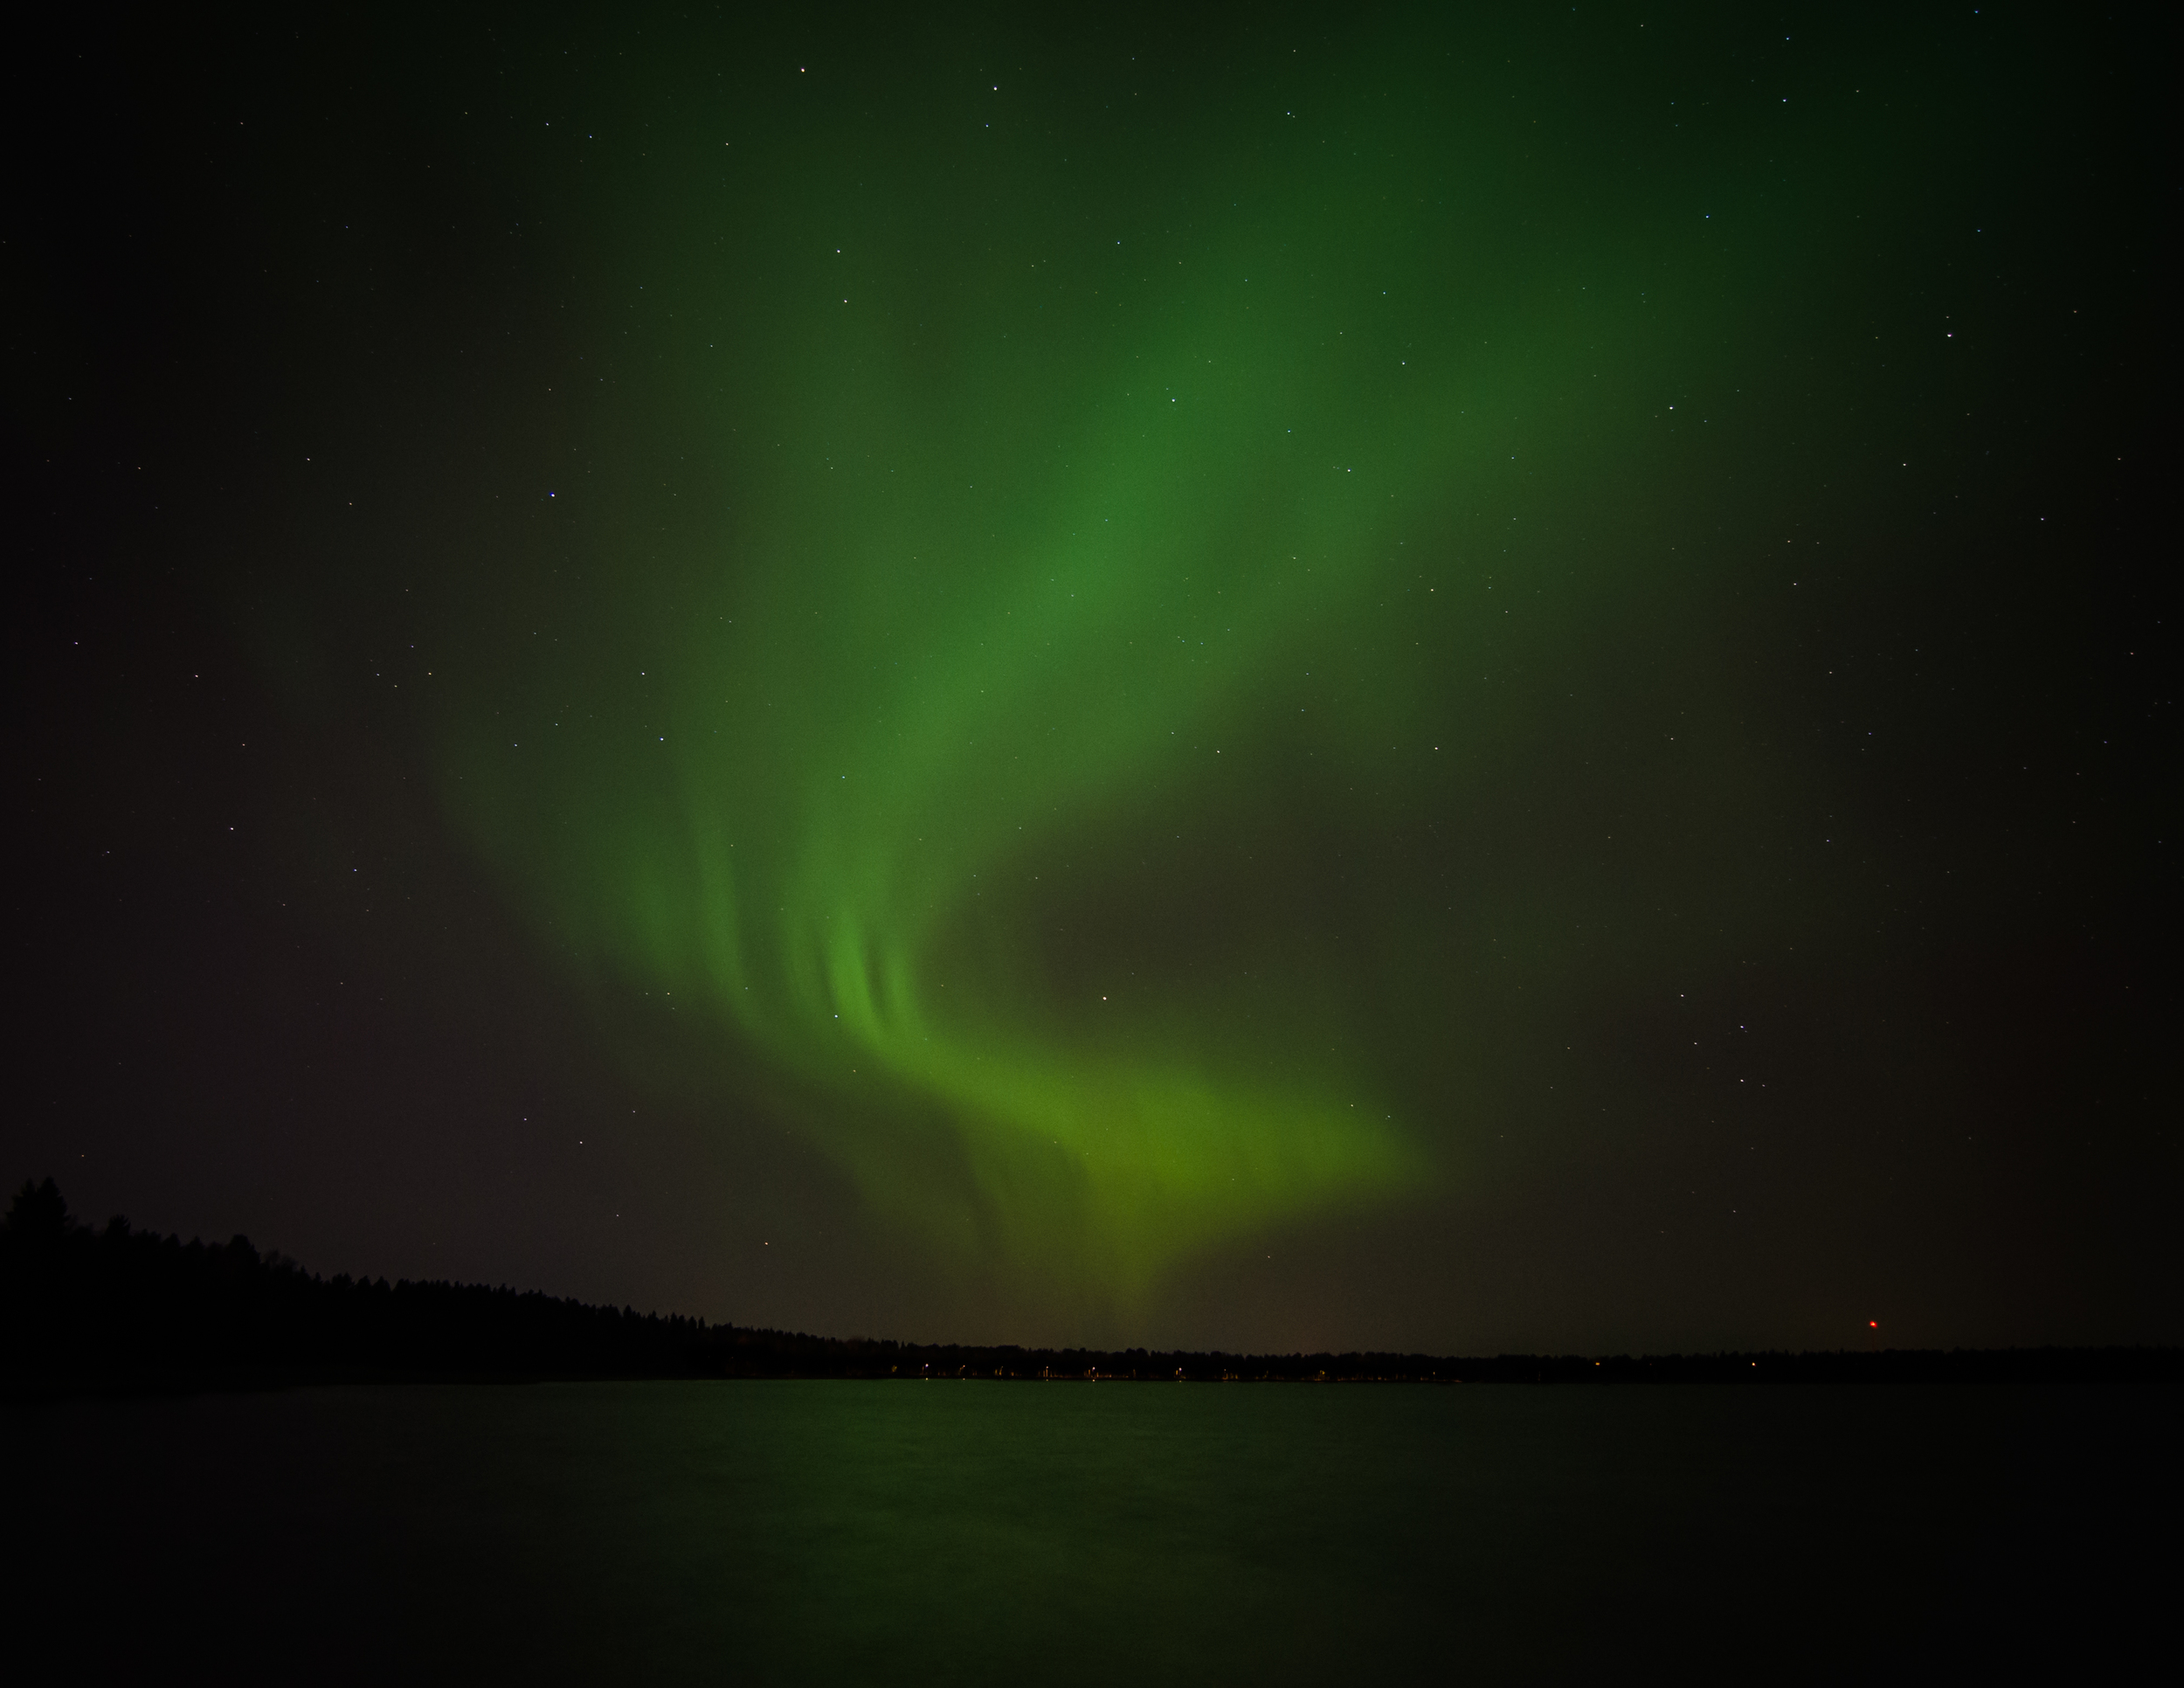 Northern lights over the Kuivasjärvi lake